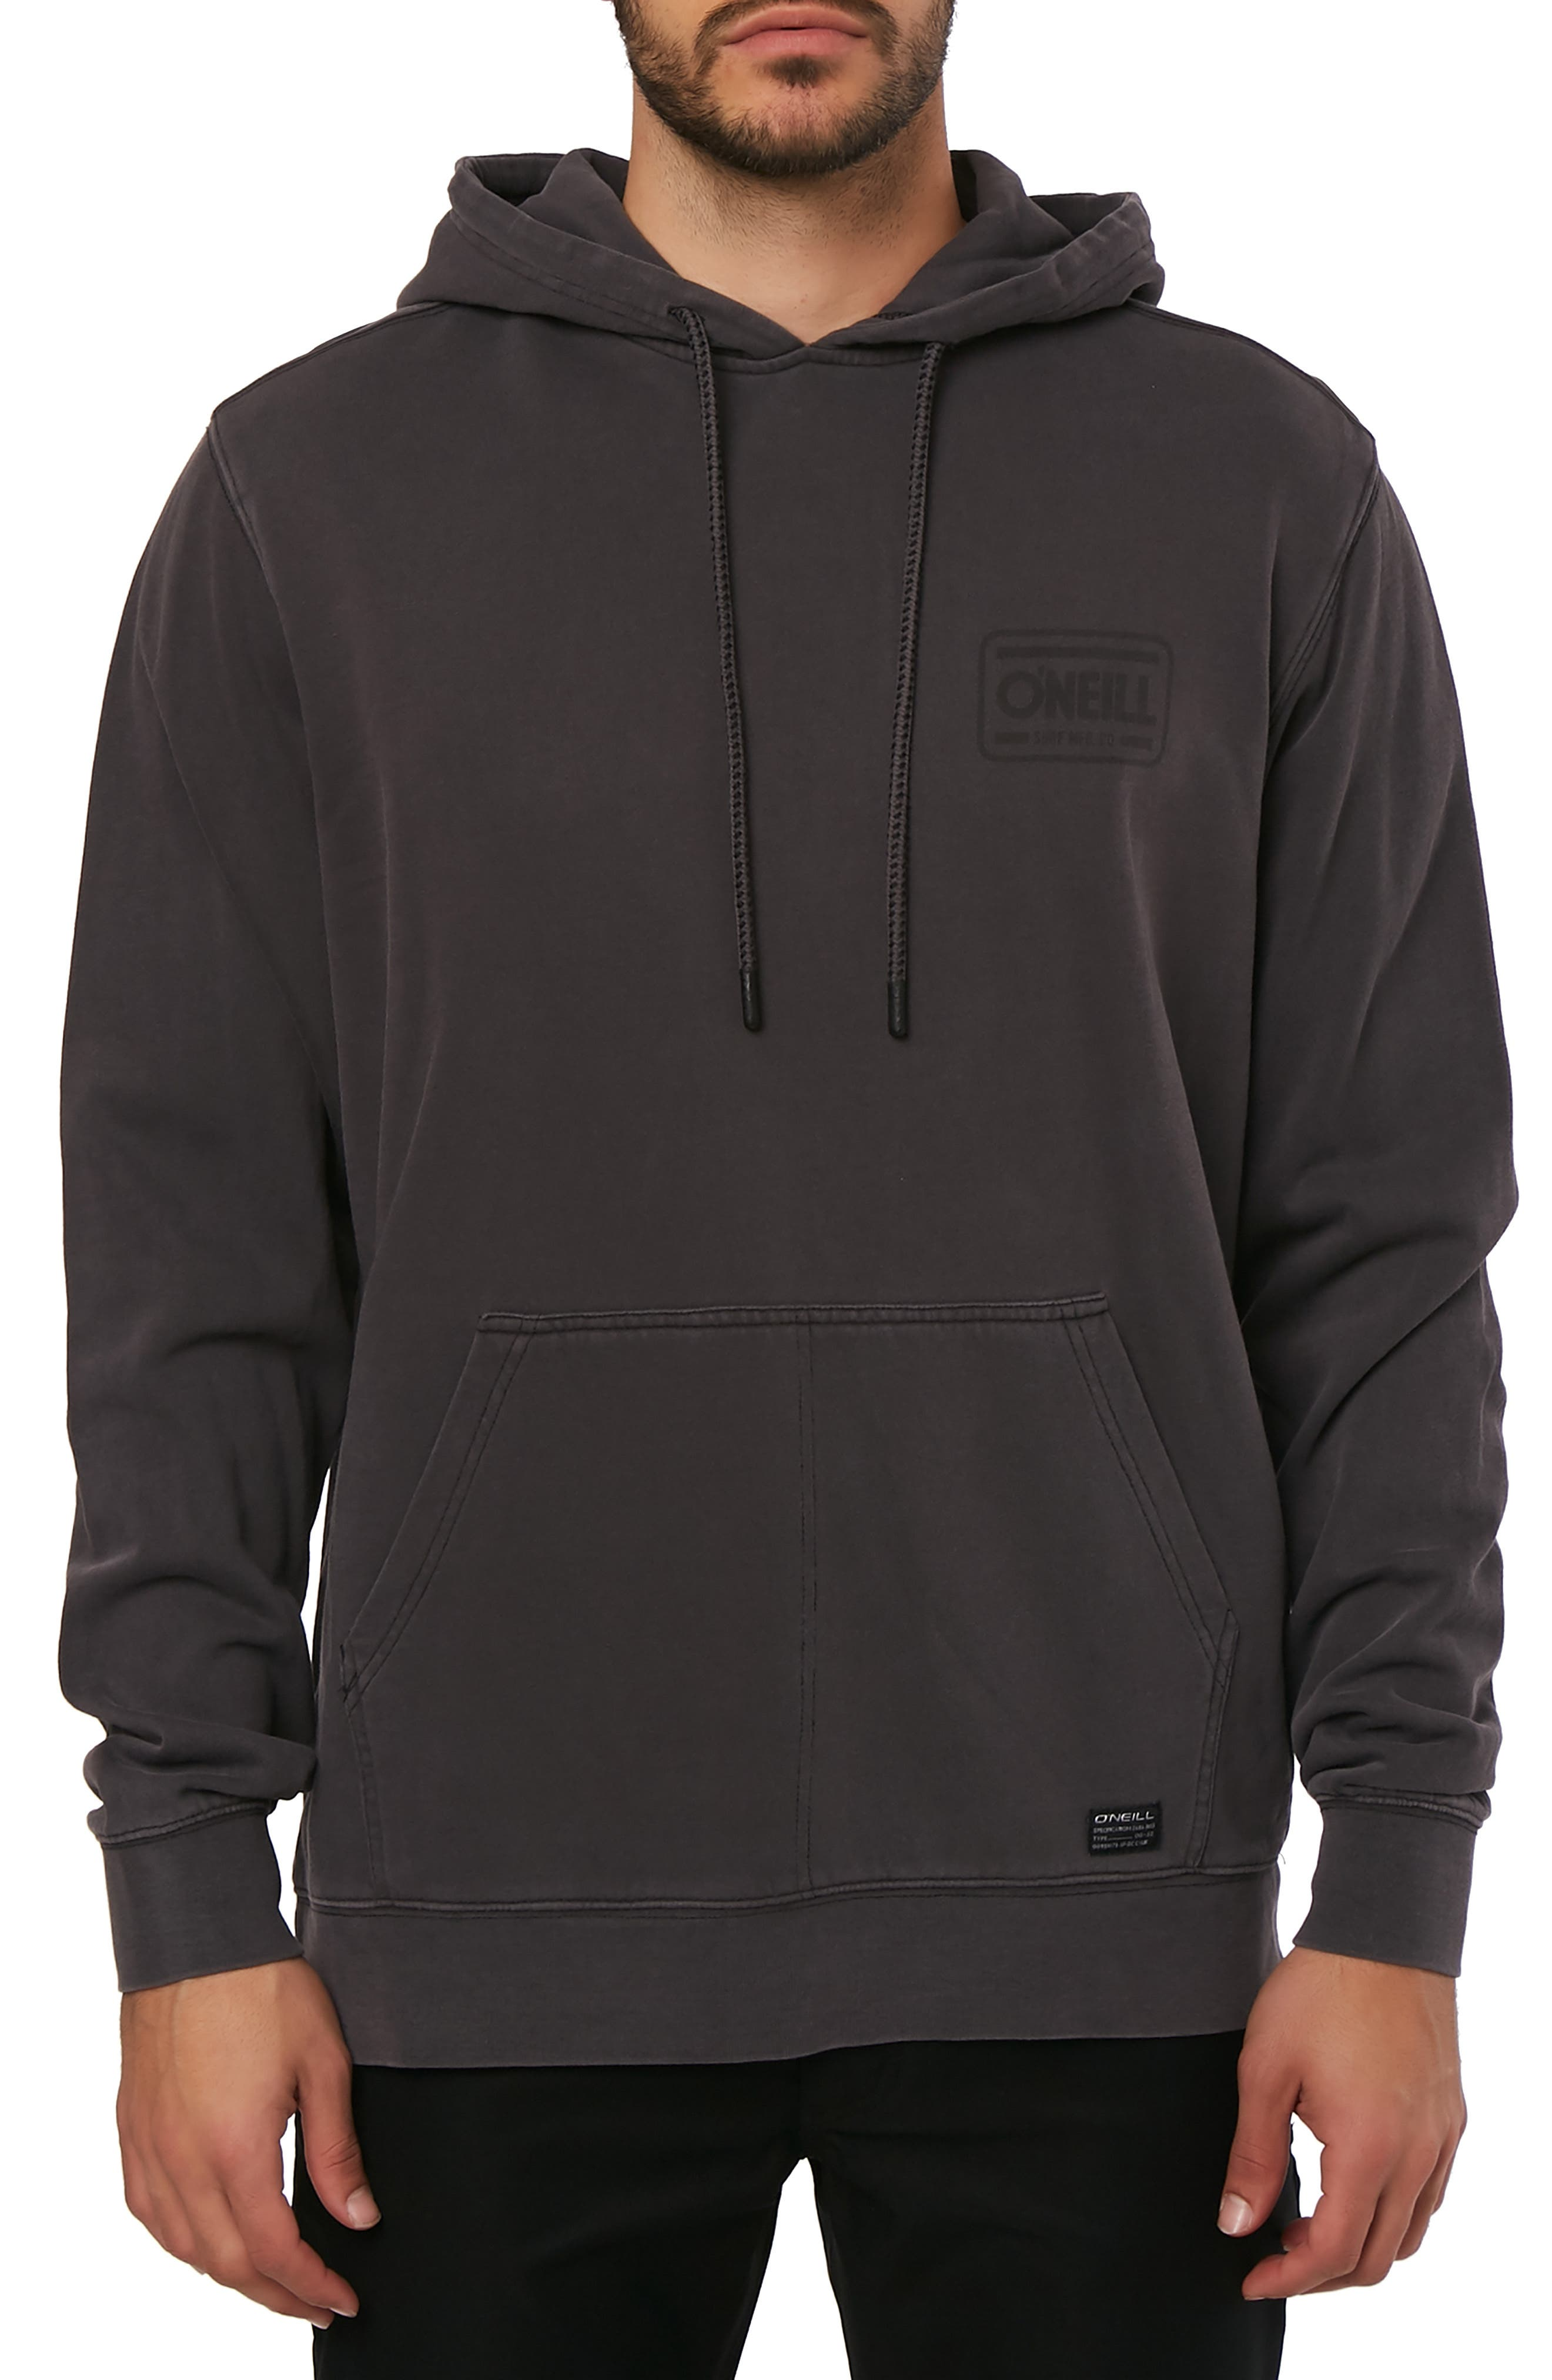 Oceans Hooded Sweatshirt,                             Main thumbnail 1, color,                             001